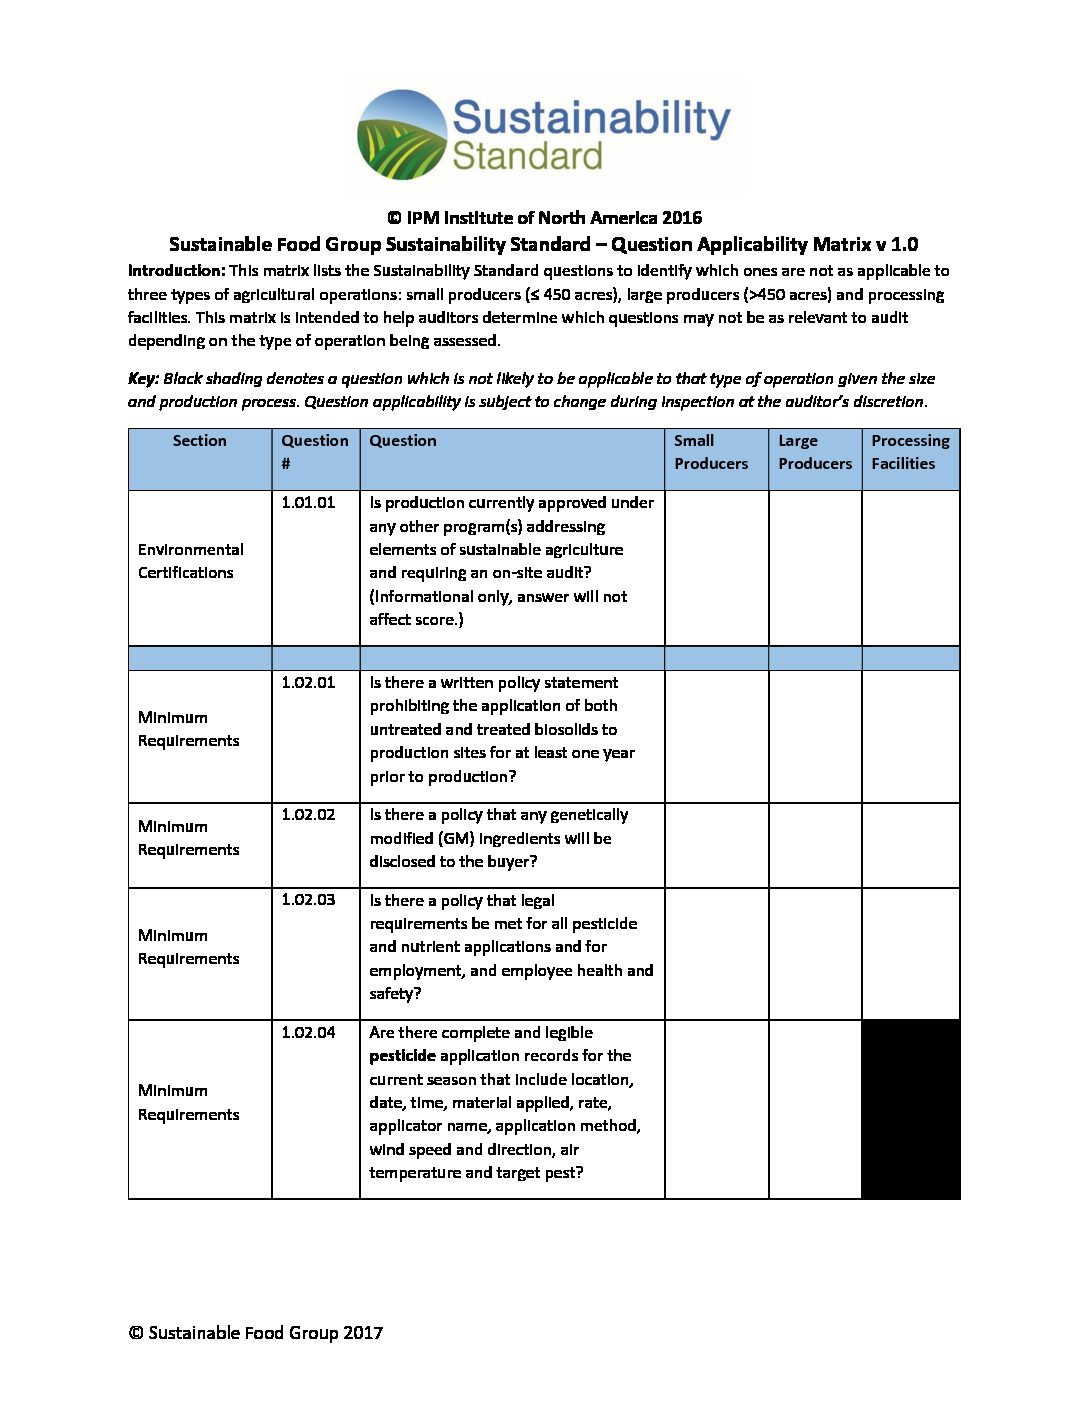 Sfg Sustainability Standard Question Applicability Matrix 121317